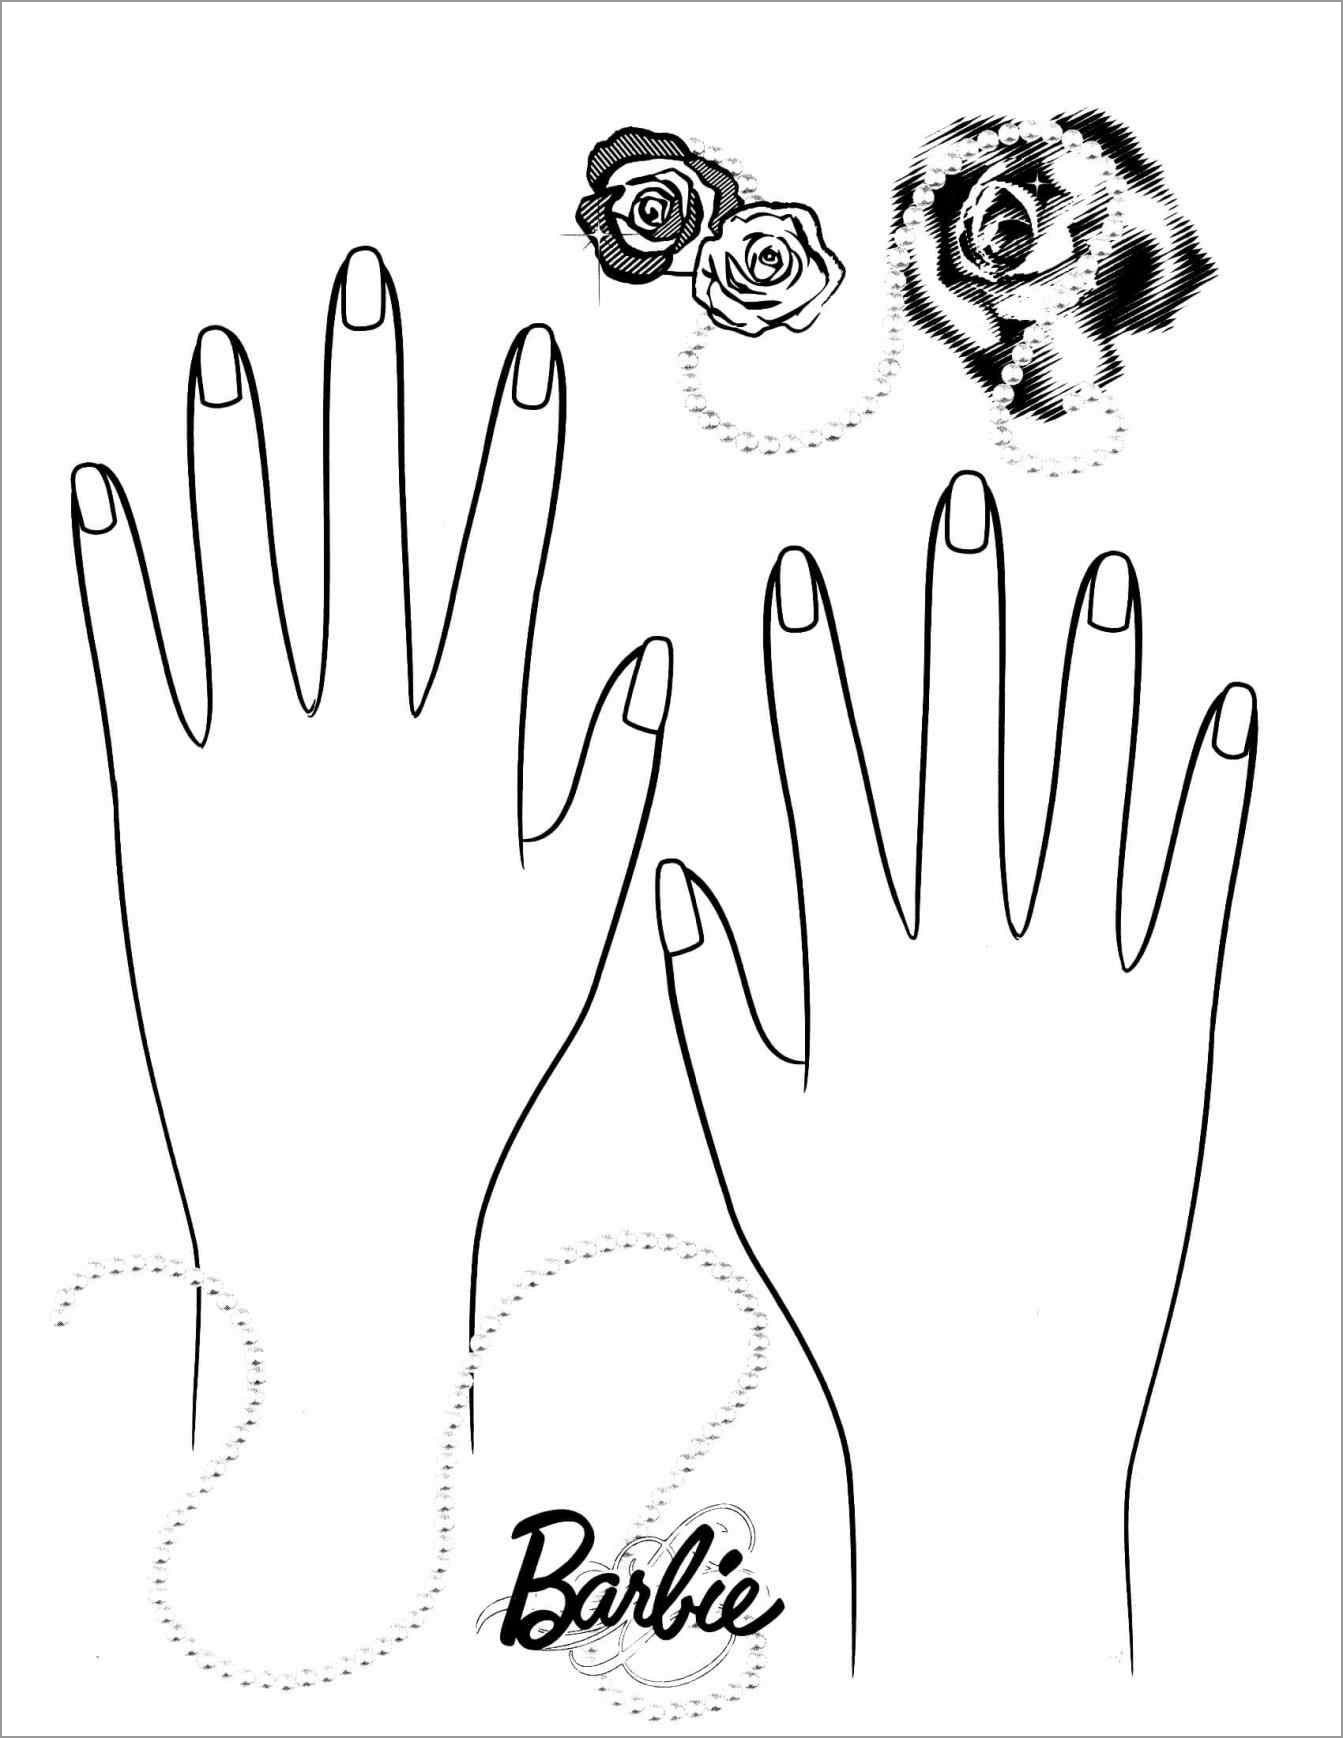 Barbie Nail Coloring Page - ColoringBay